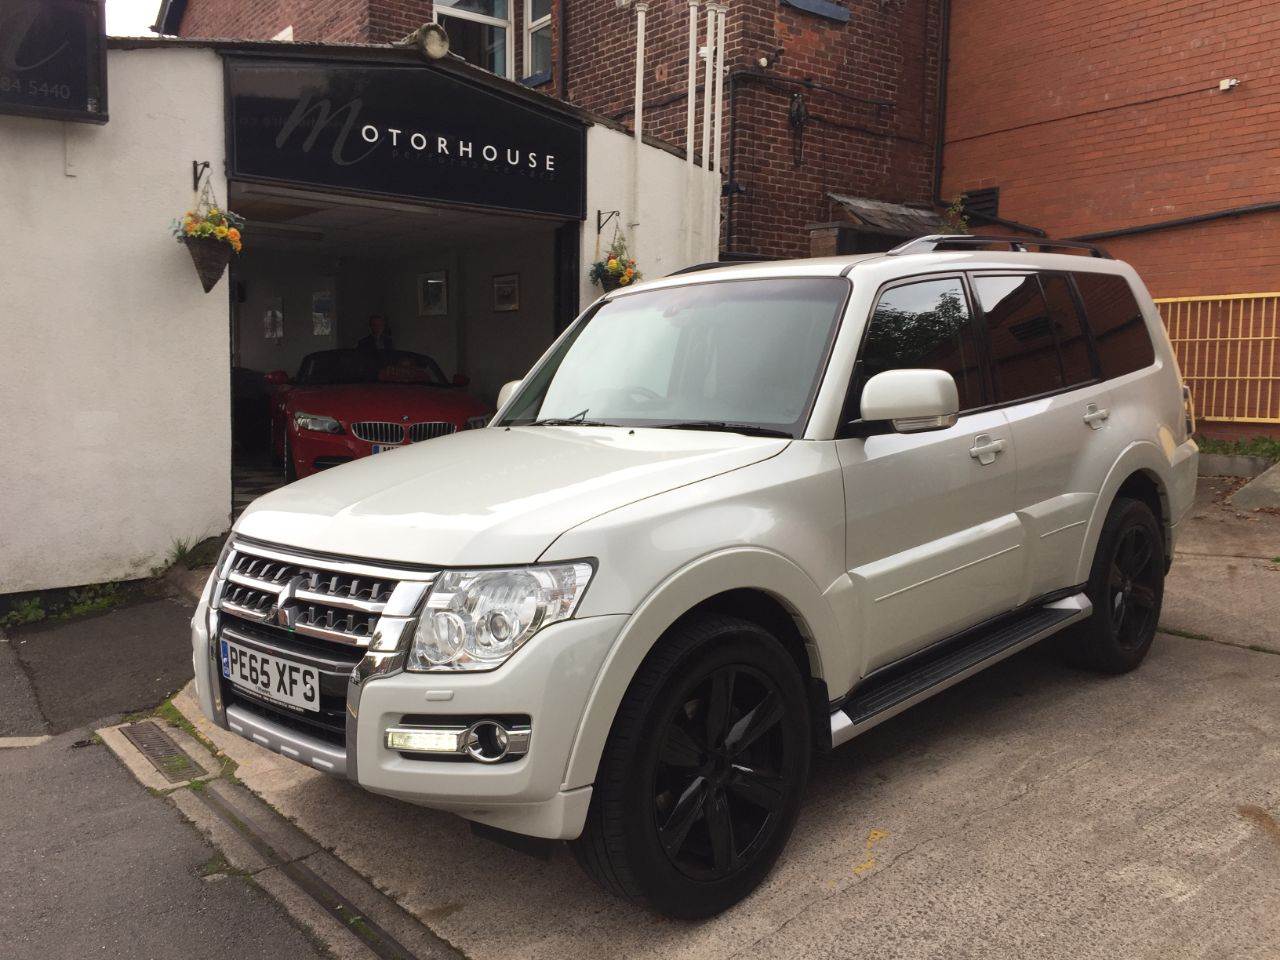 Mitsubishi Shogun 3.2 DI-DC [197] SG4 5dr Auto Estate Diesel White at Motorhouse Cheshire Stockport